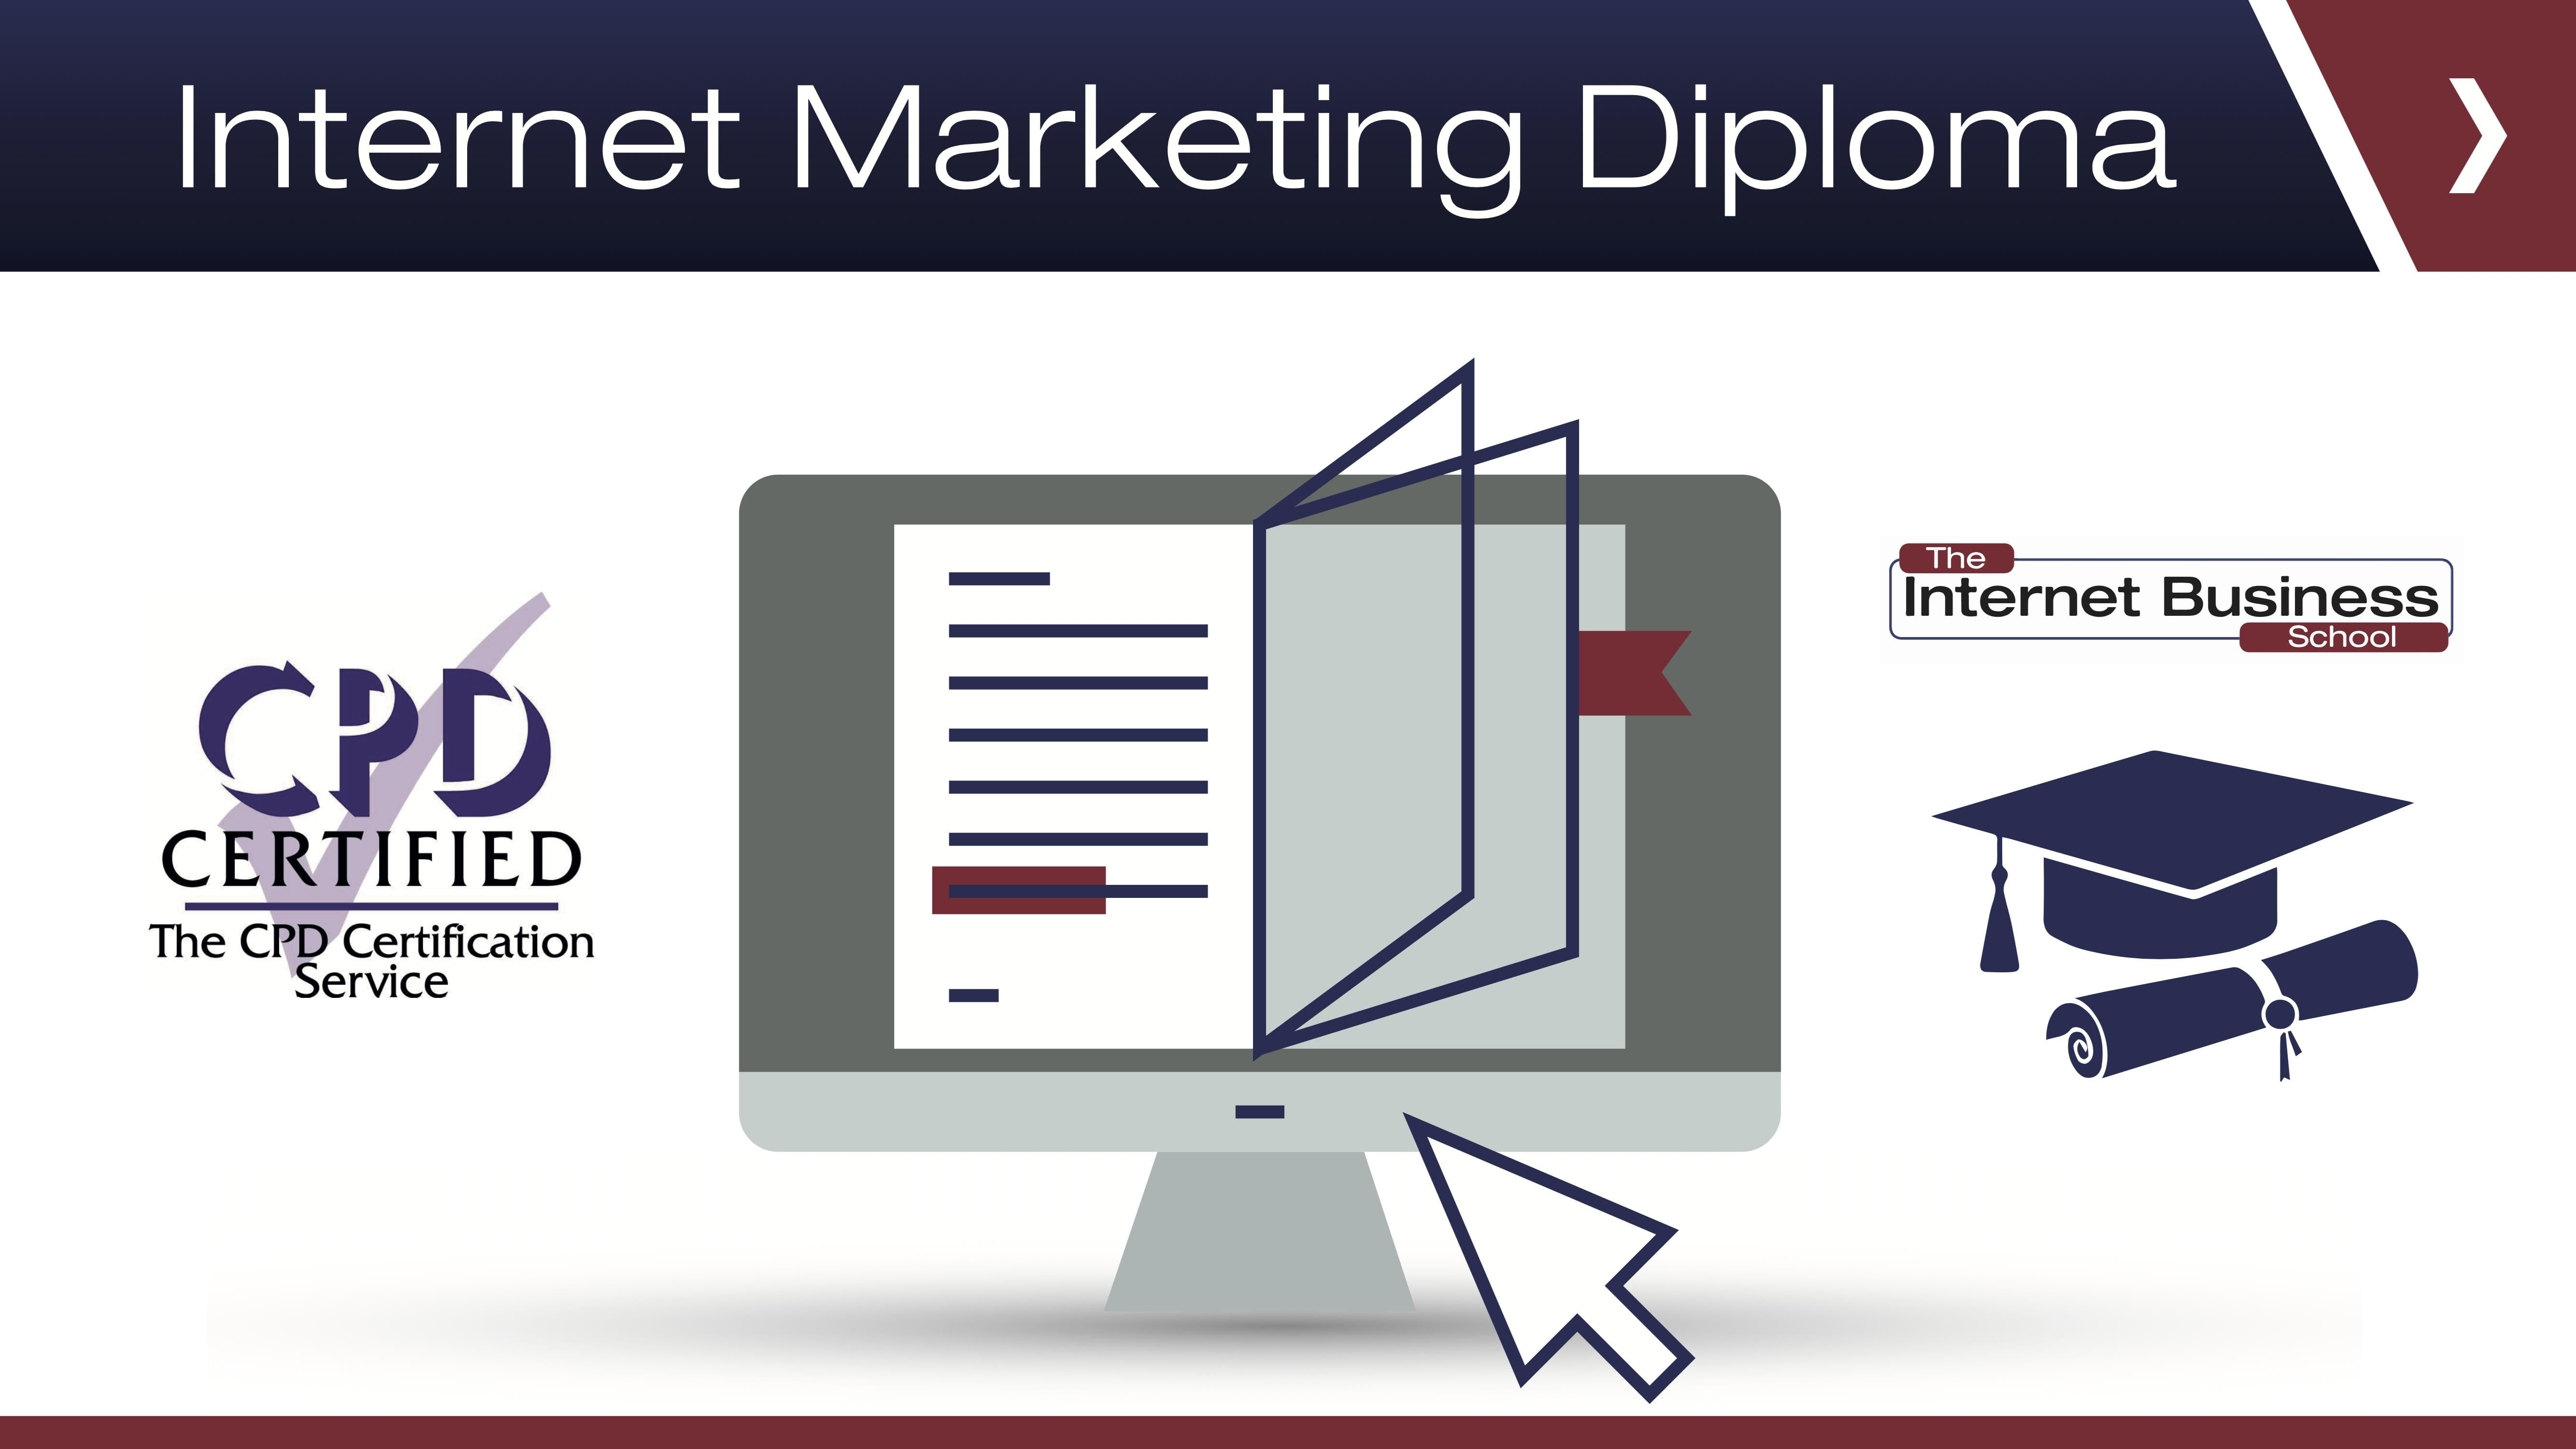 online marketing courses cpd accredited internet business school the internet business school